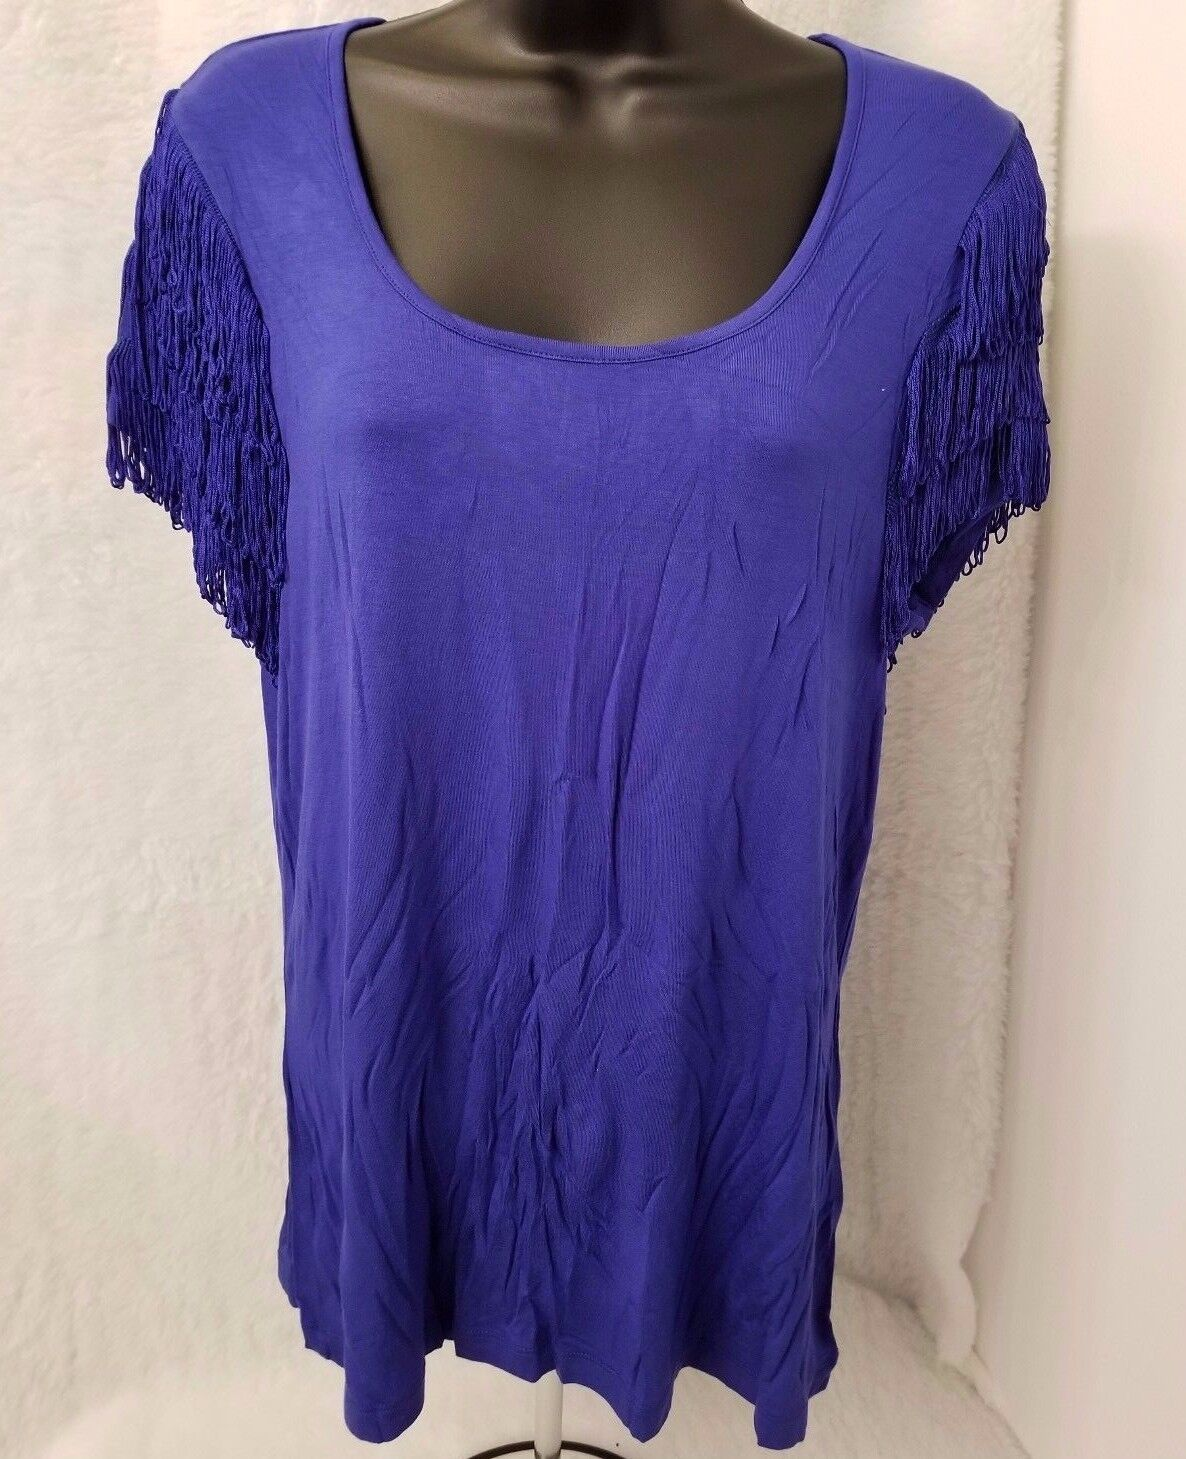 Spense NWT Womens bluee w  Fringes on Sleeve Shirt Top Size XL